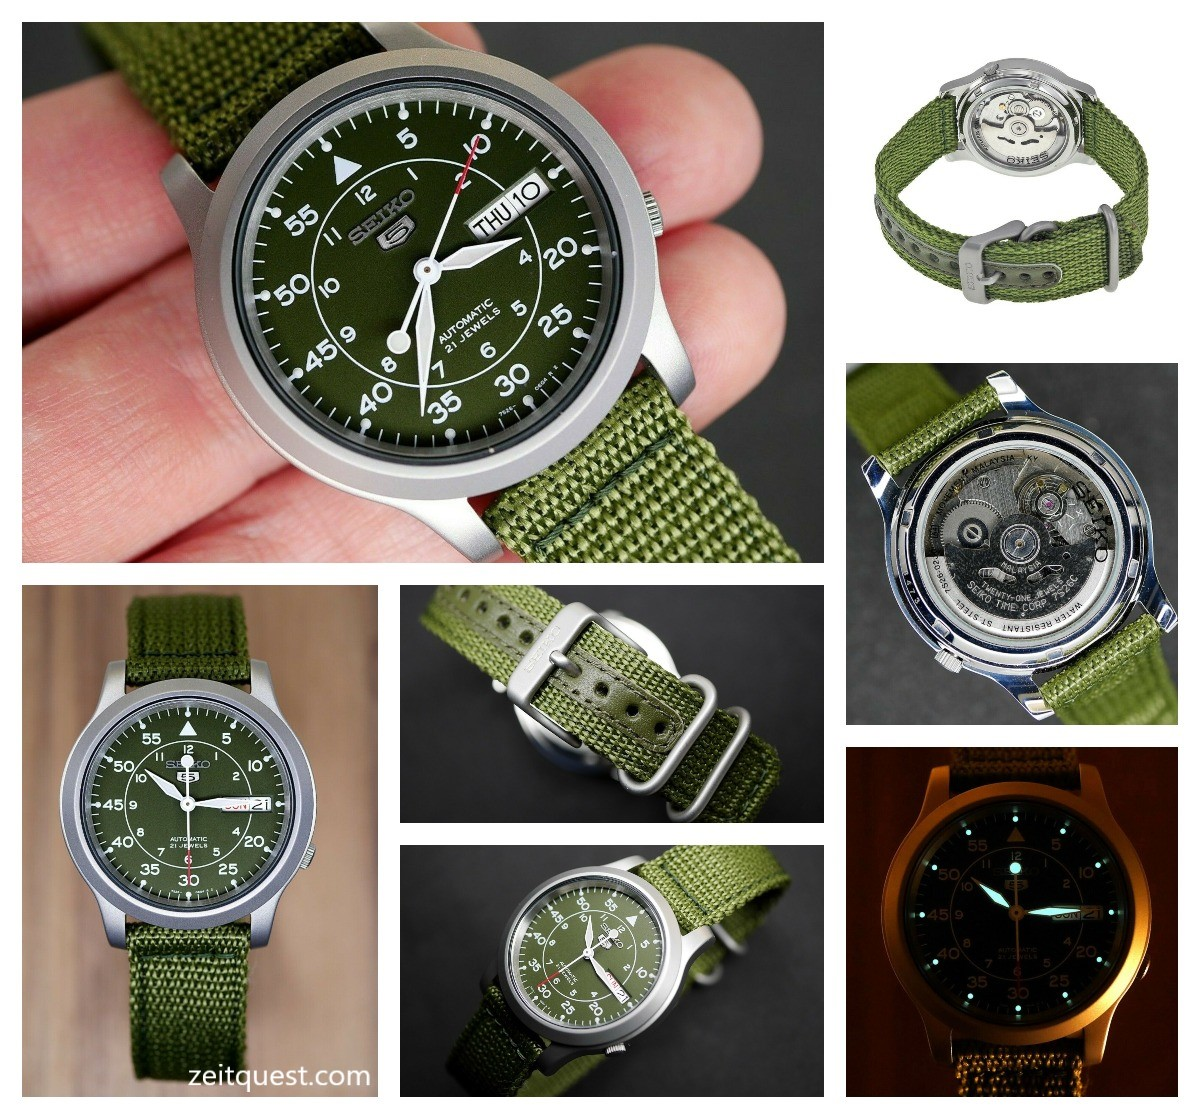 The military looking khaki Seiko SNK805, sold on ebay by military.inc